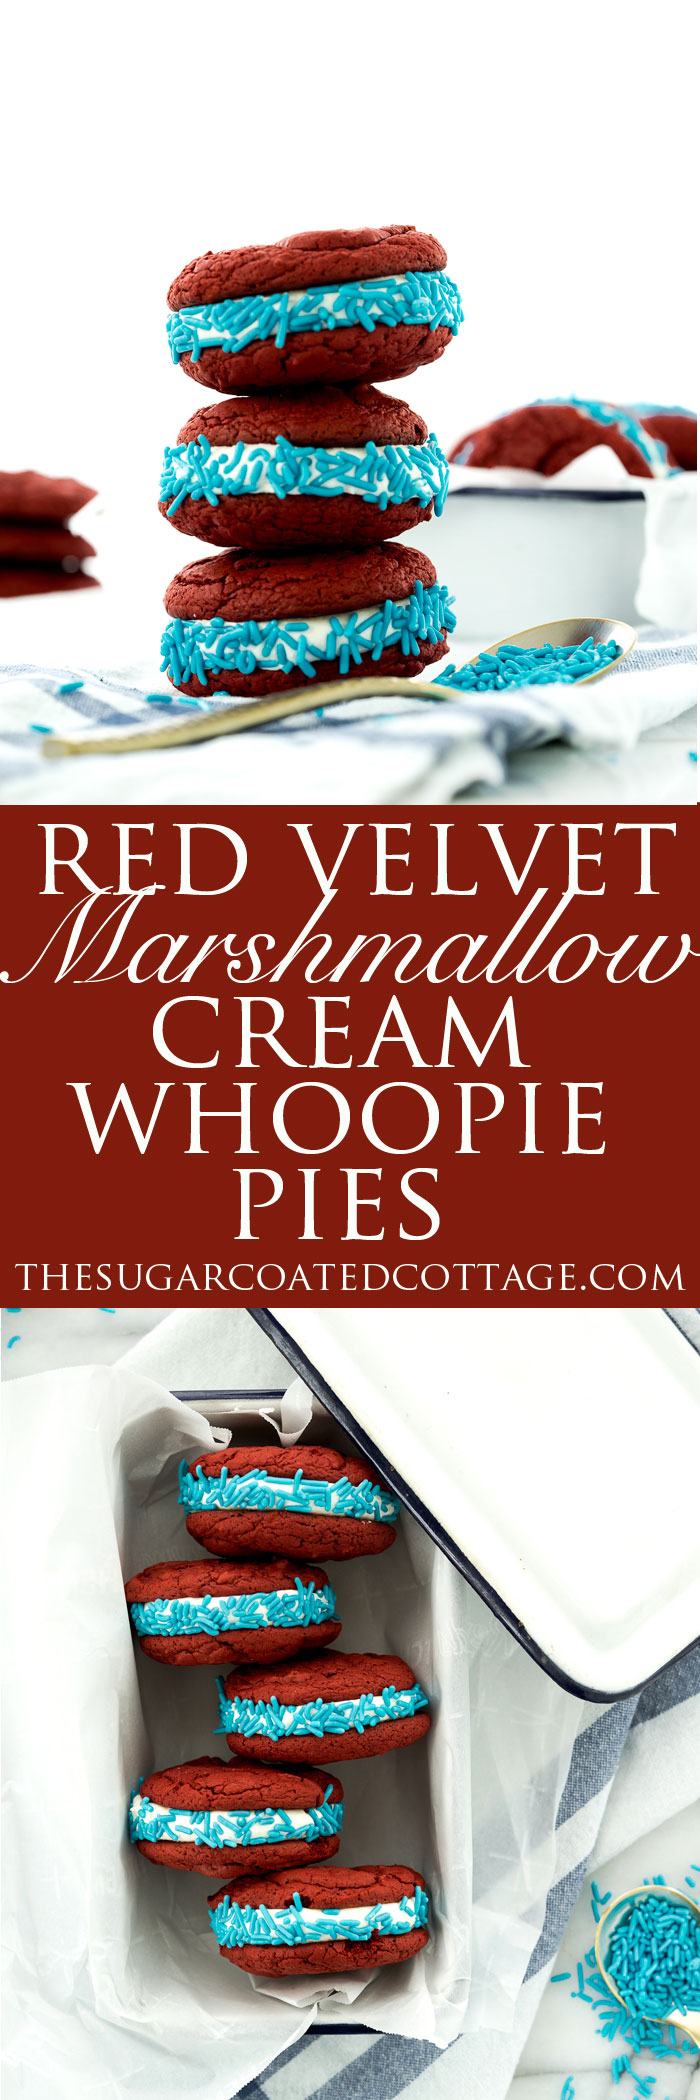 Red Velvet Marshmallow Cream Whoopie Pies. Delicious and easy to make!! | thesugarcoatedcottage.com #recipe #cake #whoopiepie #duncanhines